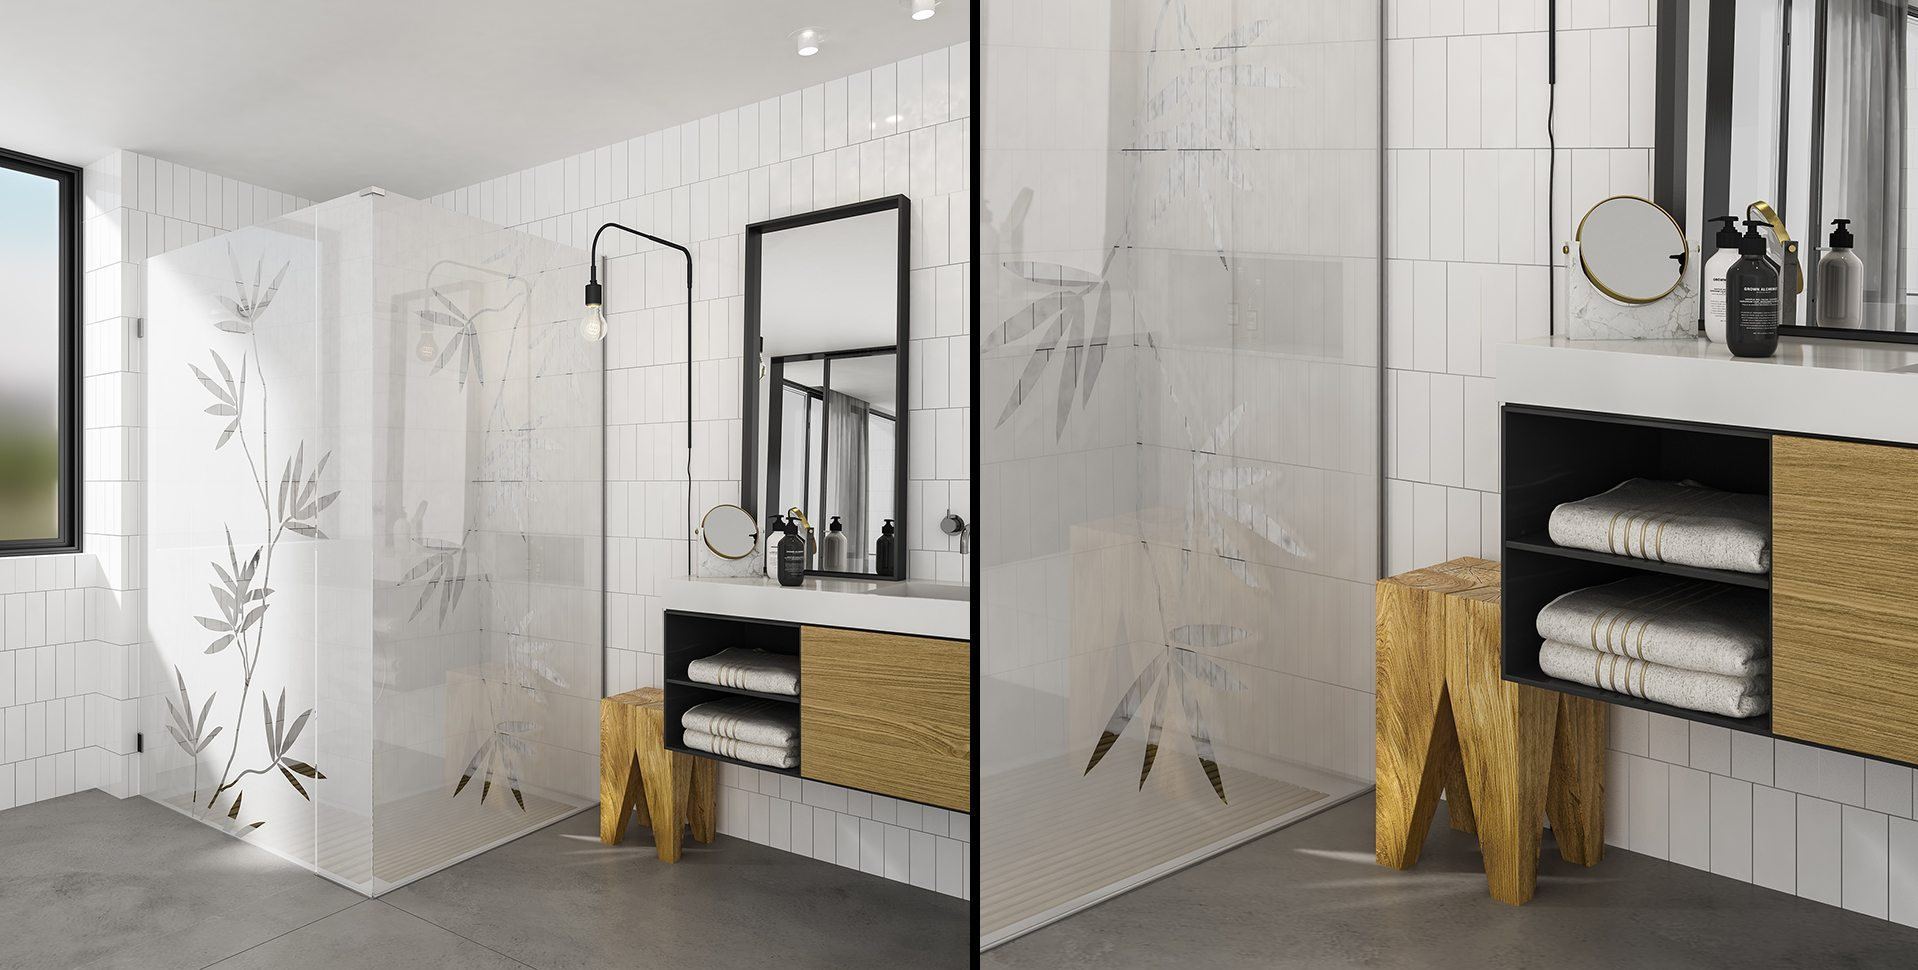 Product Visualization: Printing on glass, Bathroom Interior